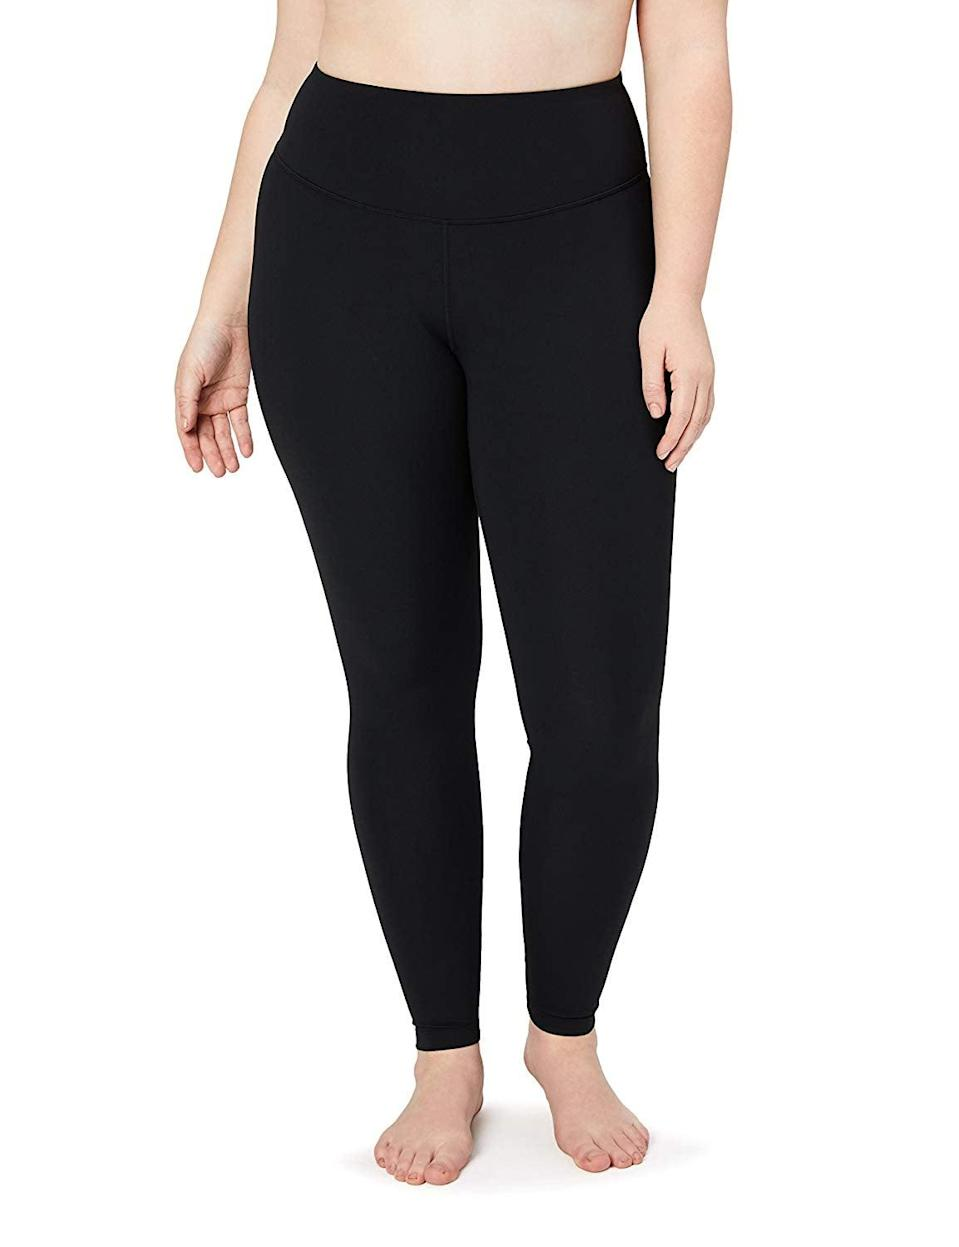 """<p>One woman said of the <span>Core 10 Women's Spectrum Yoga High Waist Full-Length Legging</span> ($21-$42), """"The only thing that I don't like about these leggings is that I have to take them off to shower and wash them.""""</p>"""